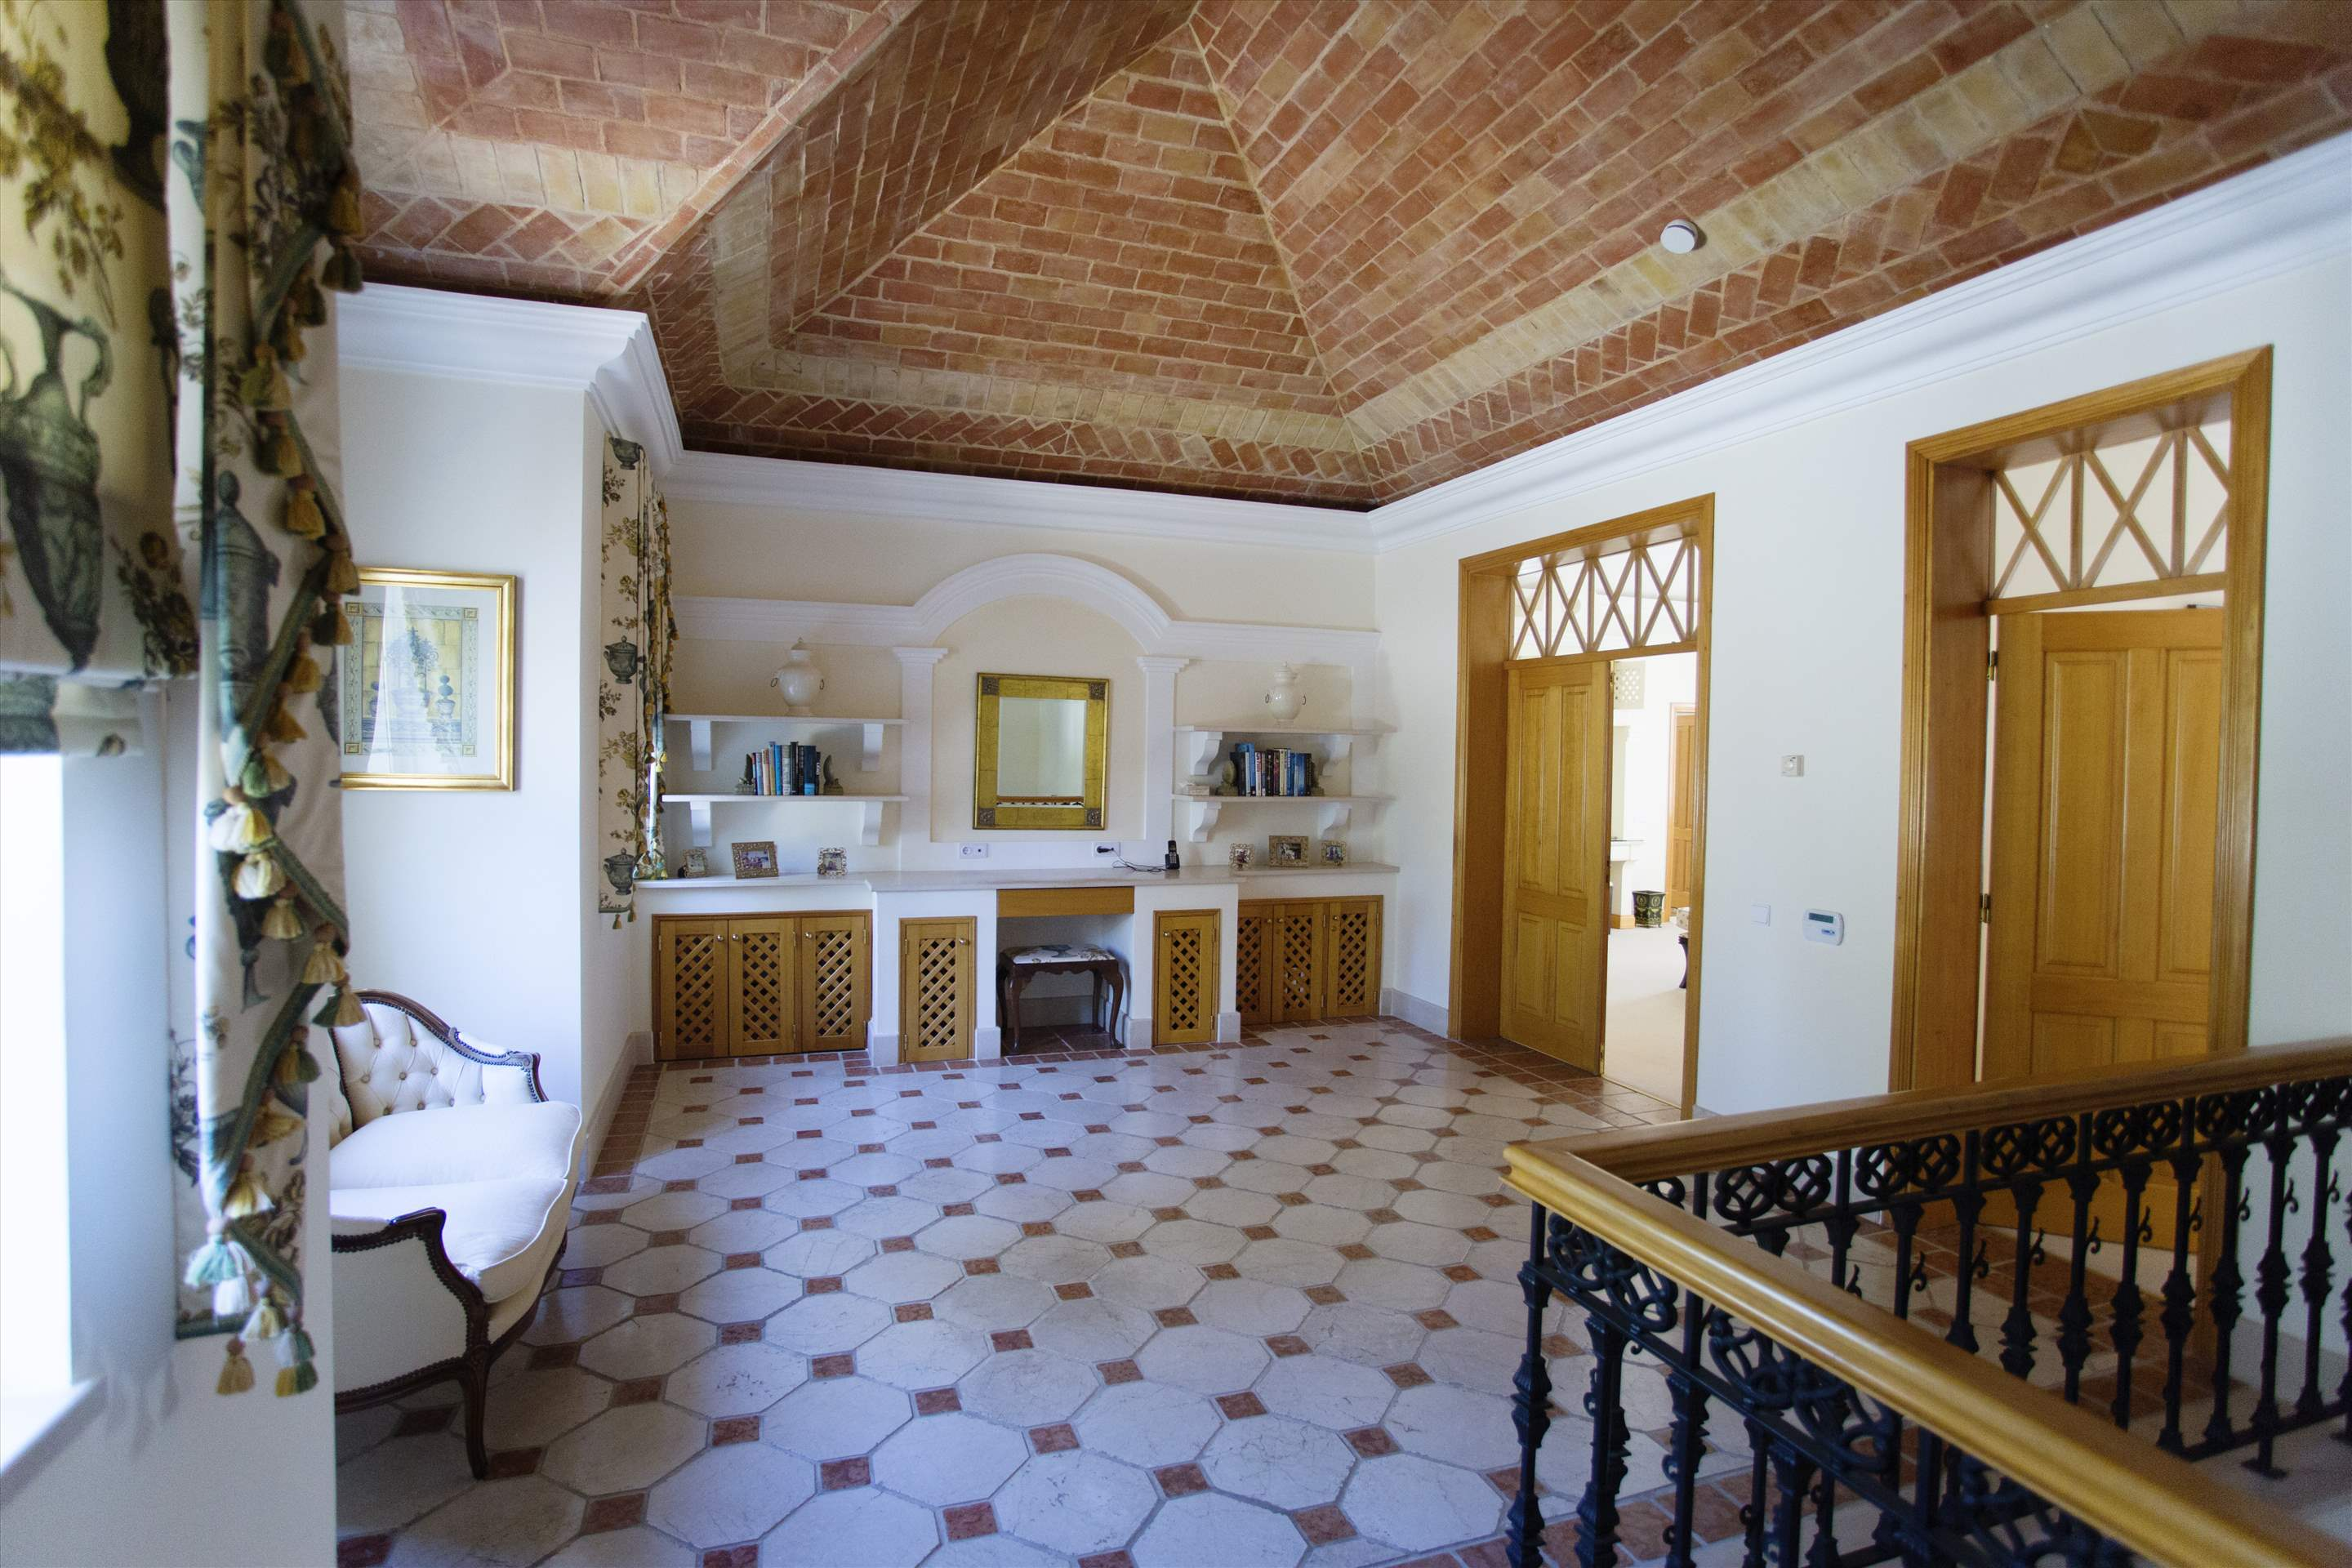 Villa Palmeiras Altas, 5 bedroom villa in Quinta do Lago, Algarve Photo #33